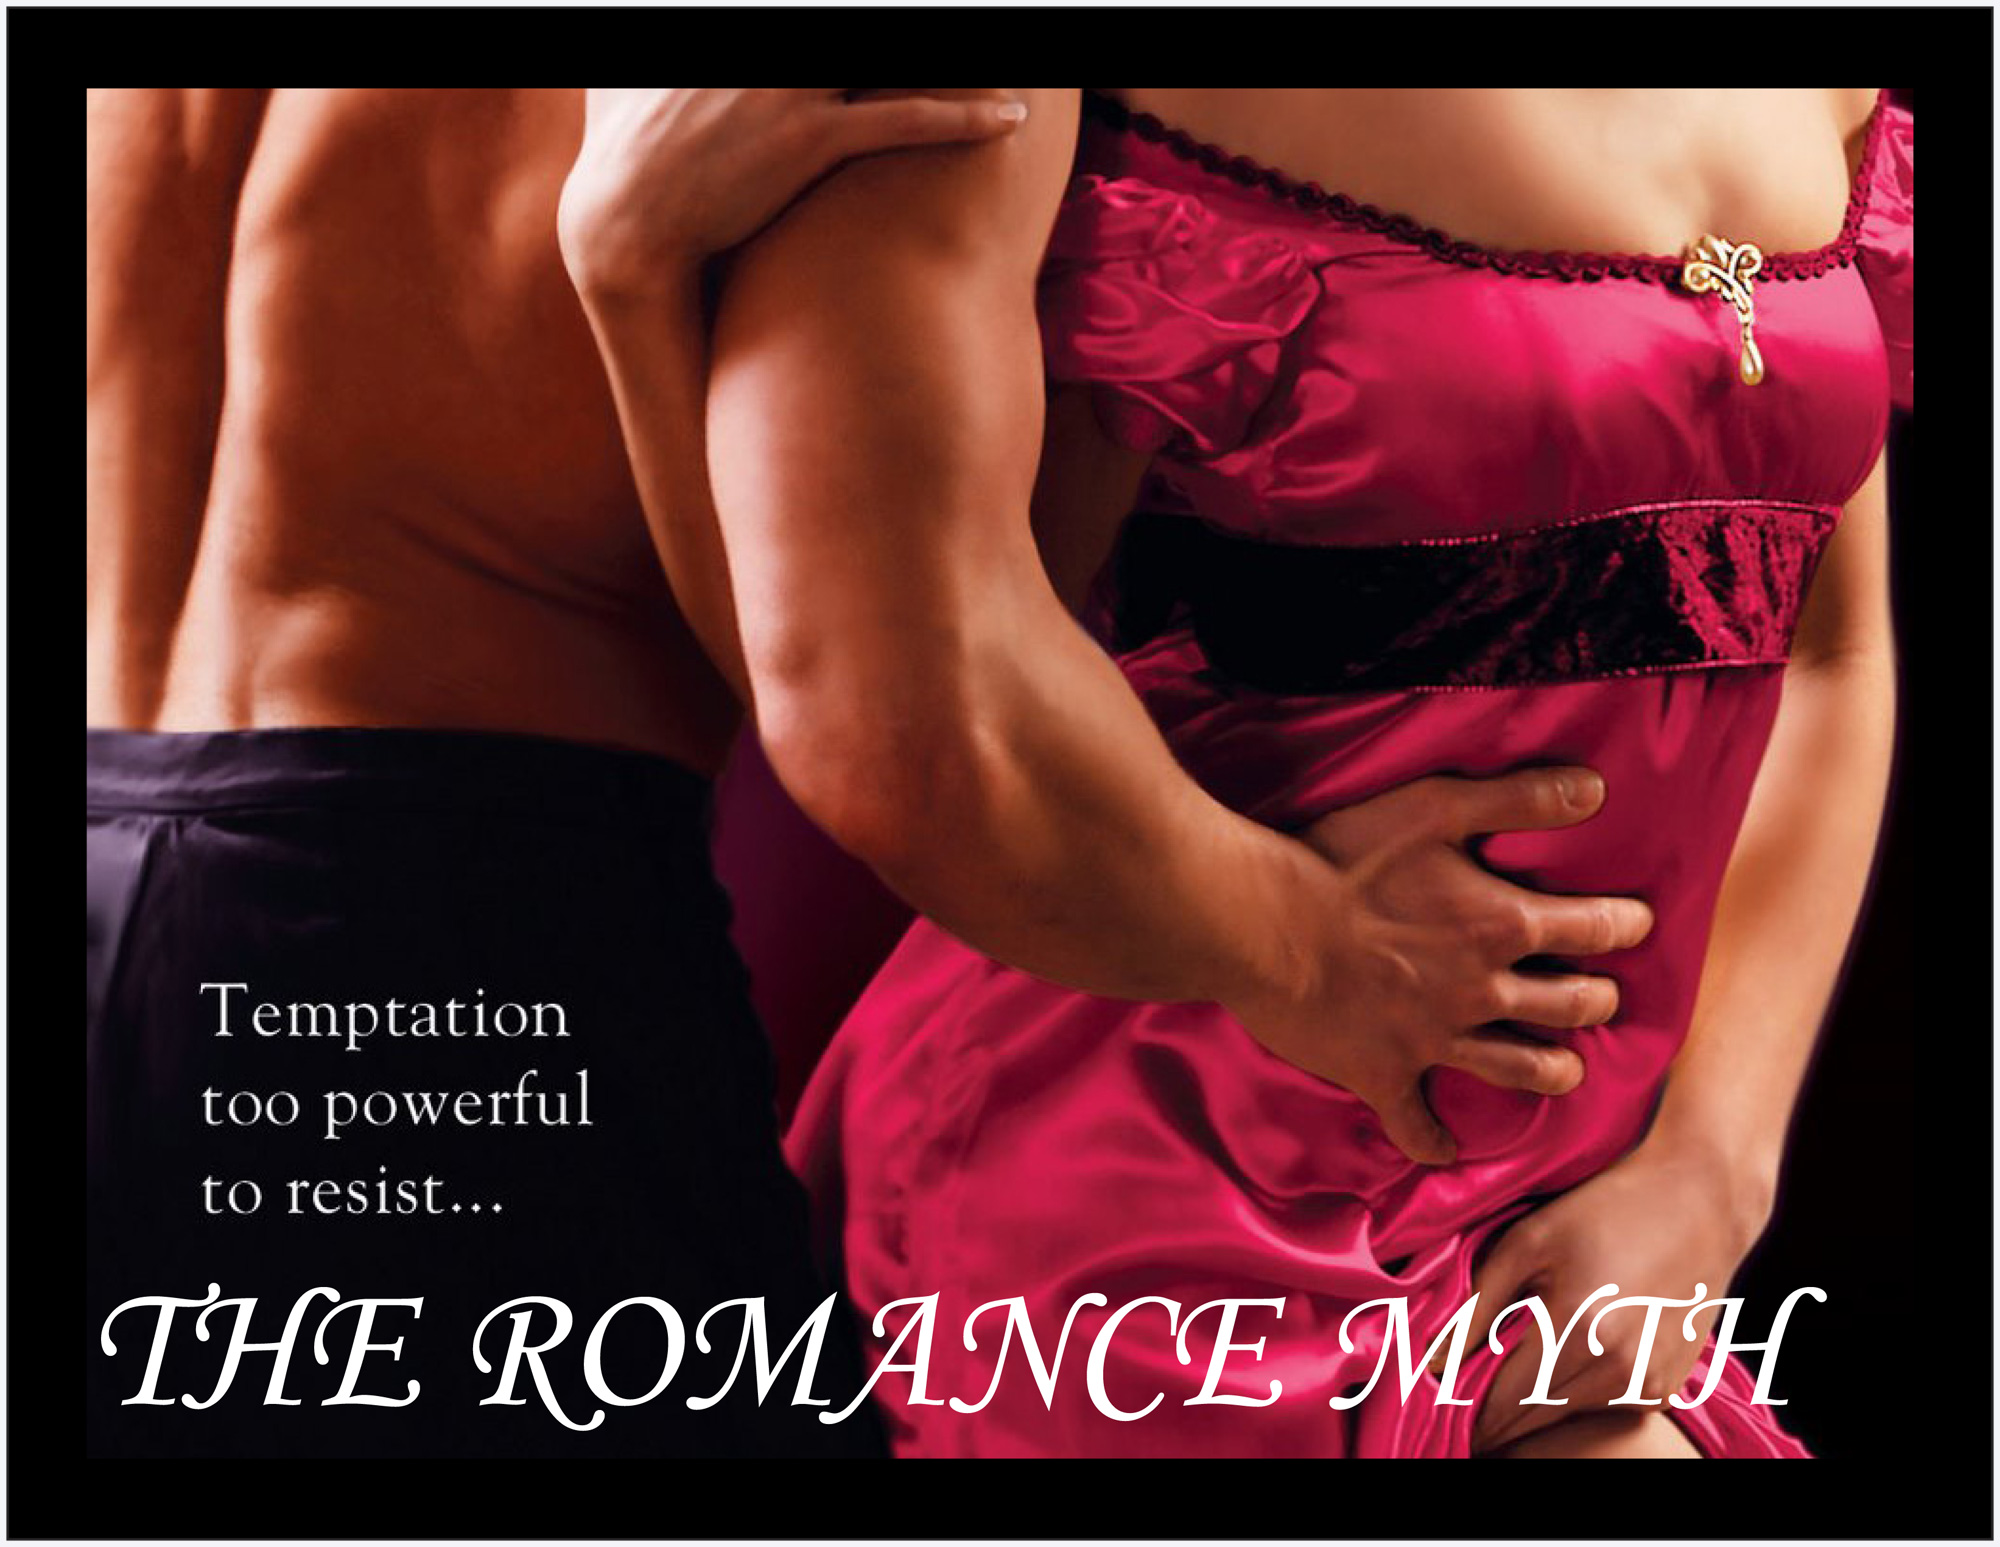 image of romance book cover with text reading 'The Romance Myth'